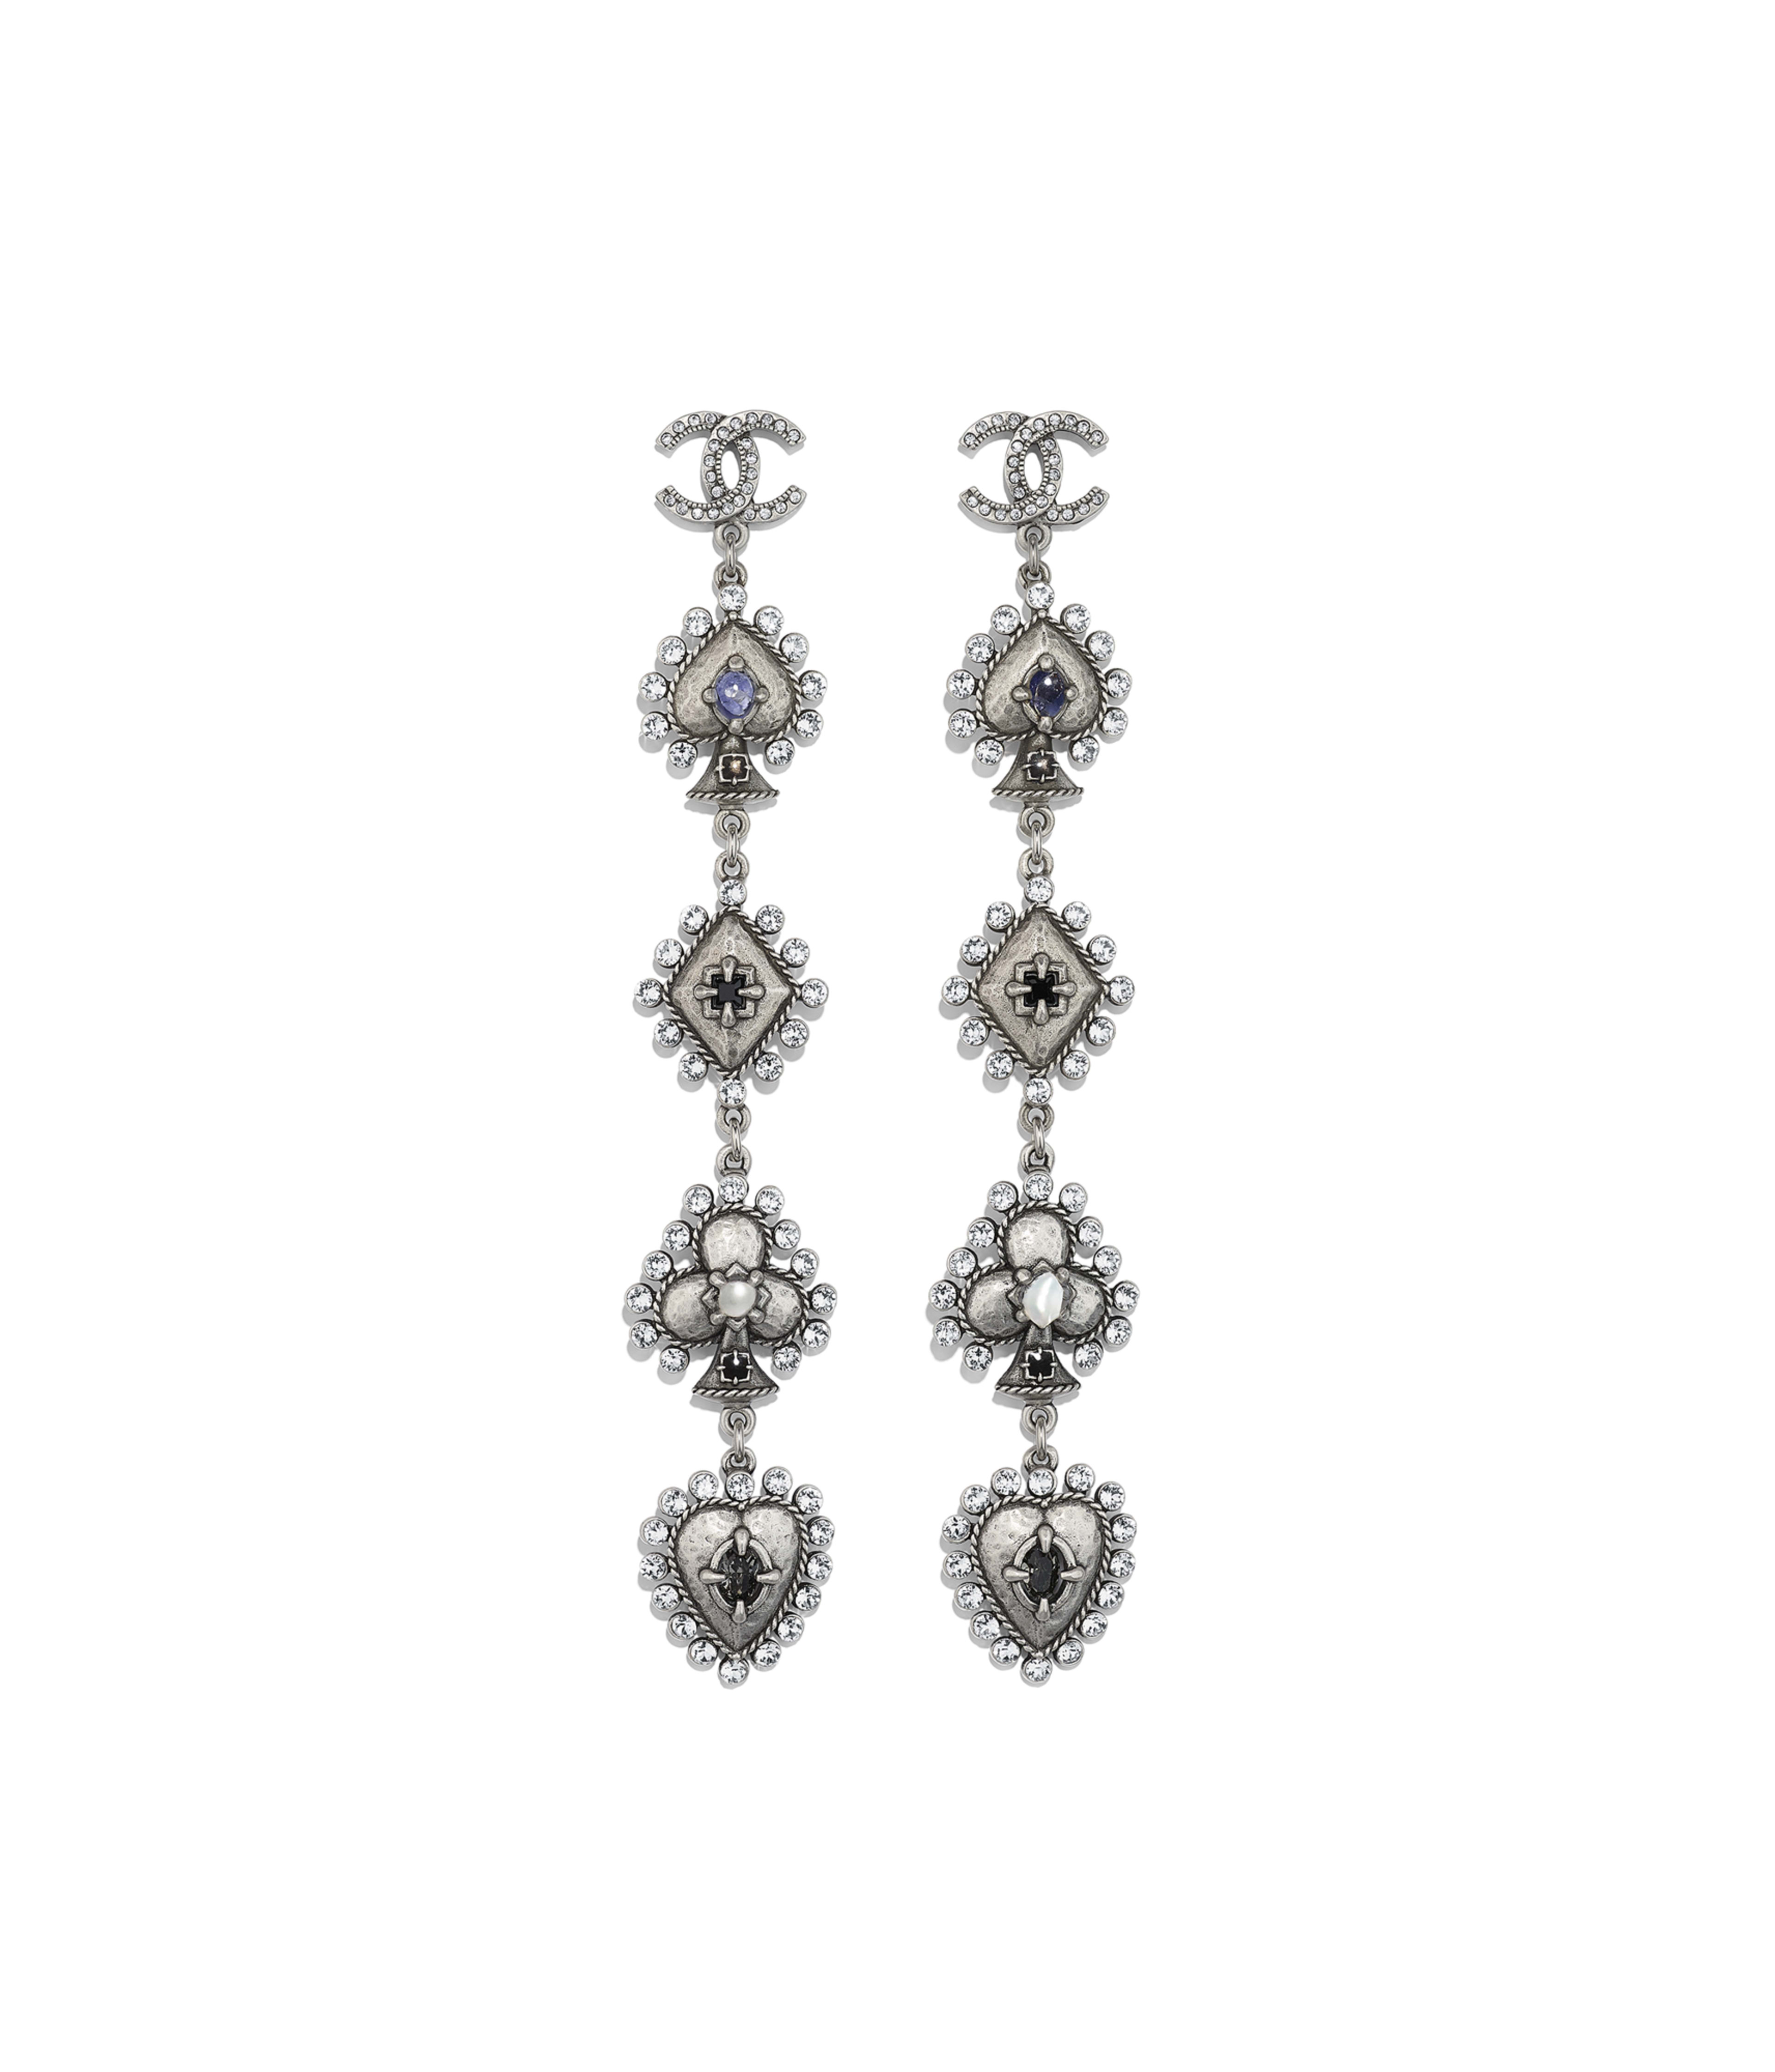 1934571bdb2e5 Earrings - Costume jewelry | CHANEL